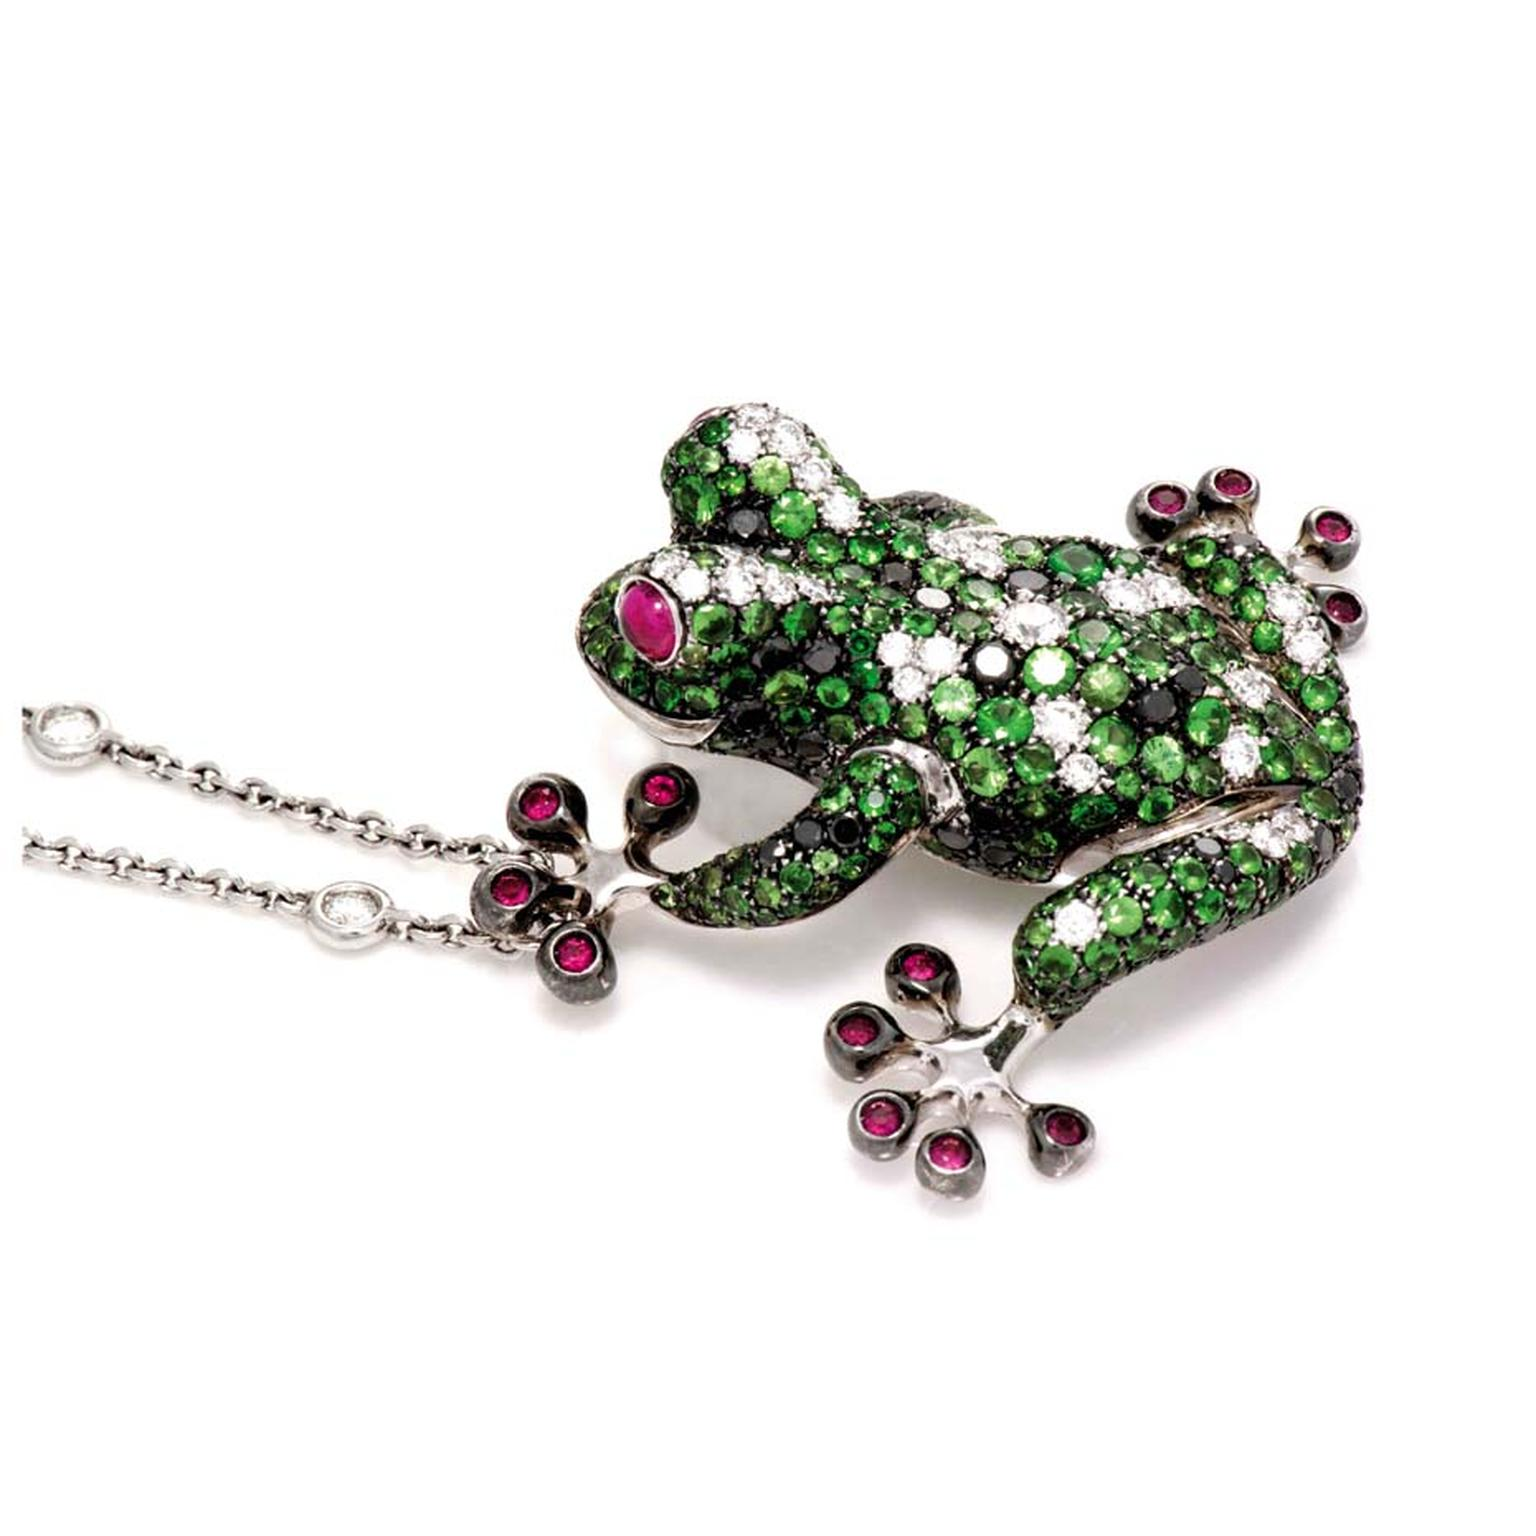 Gismondi Frog pendant with diamonds, rubies and tzavorites.